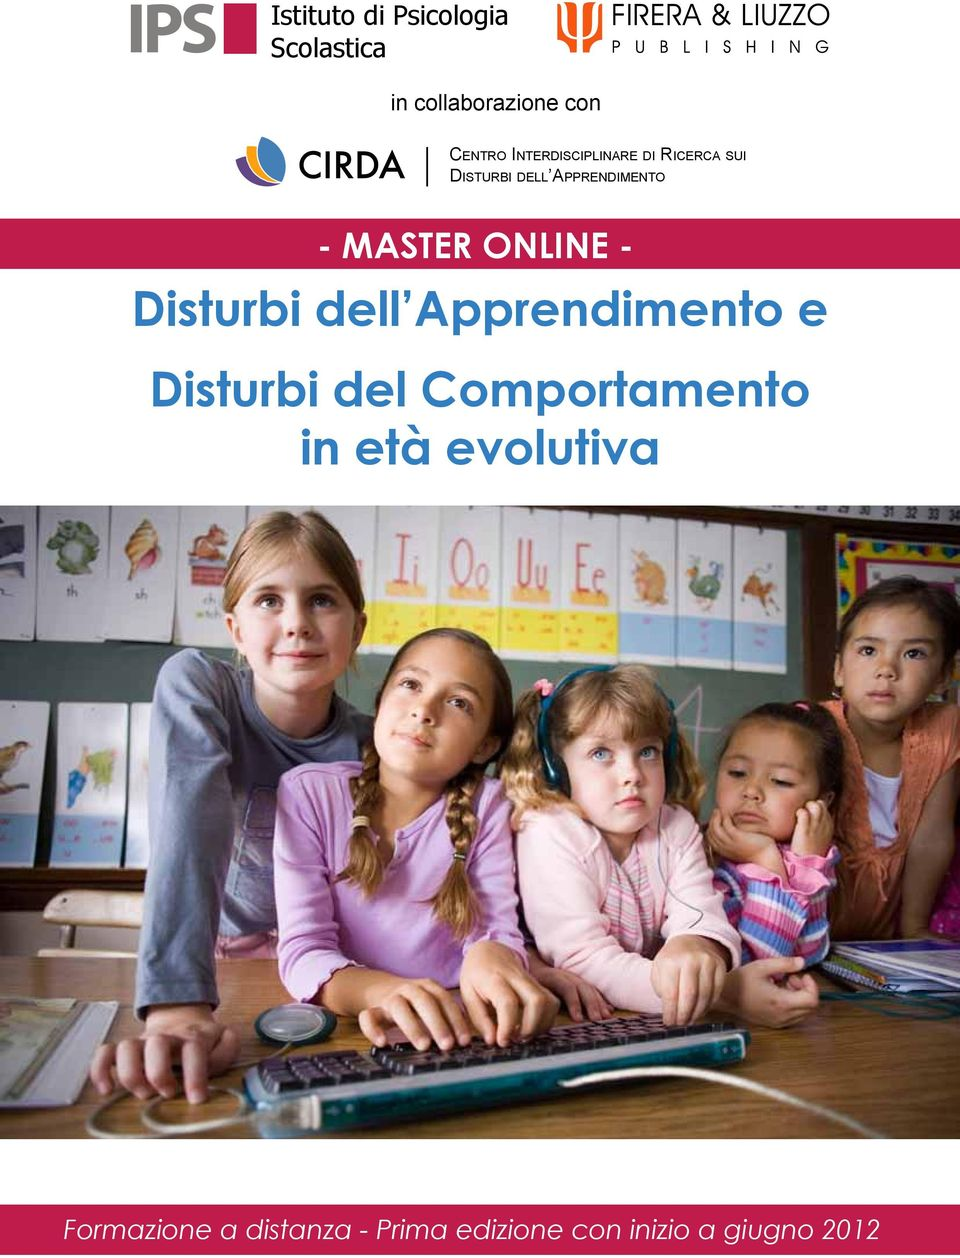 ONLINE - Disturbi dell Apprendimento e Disturbi del Comportamento in